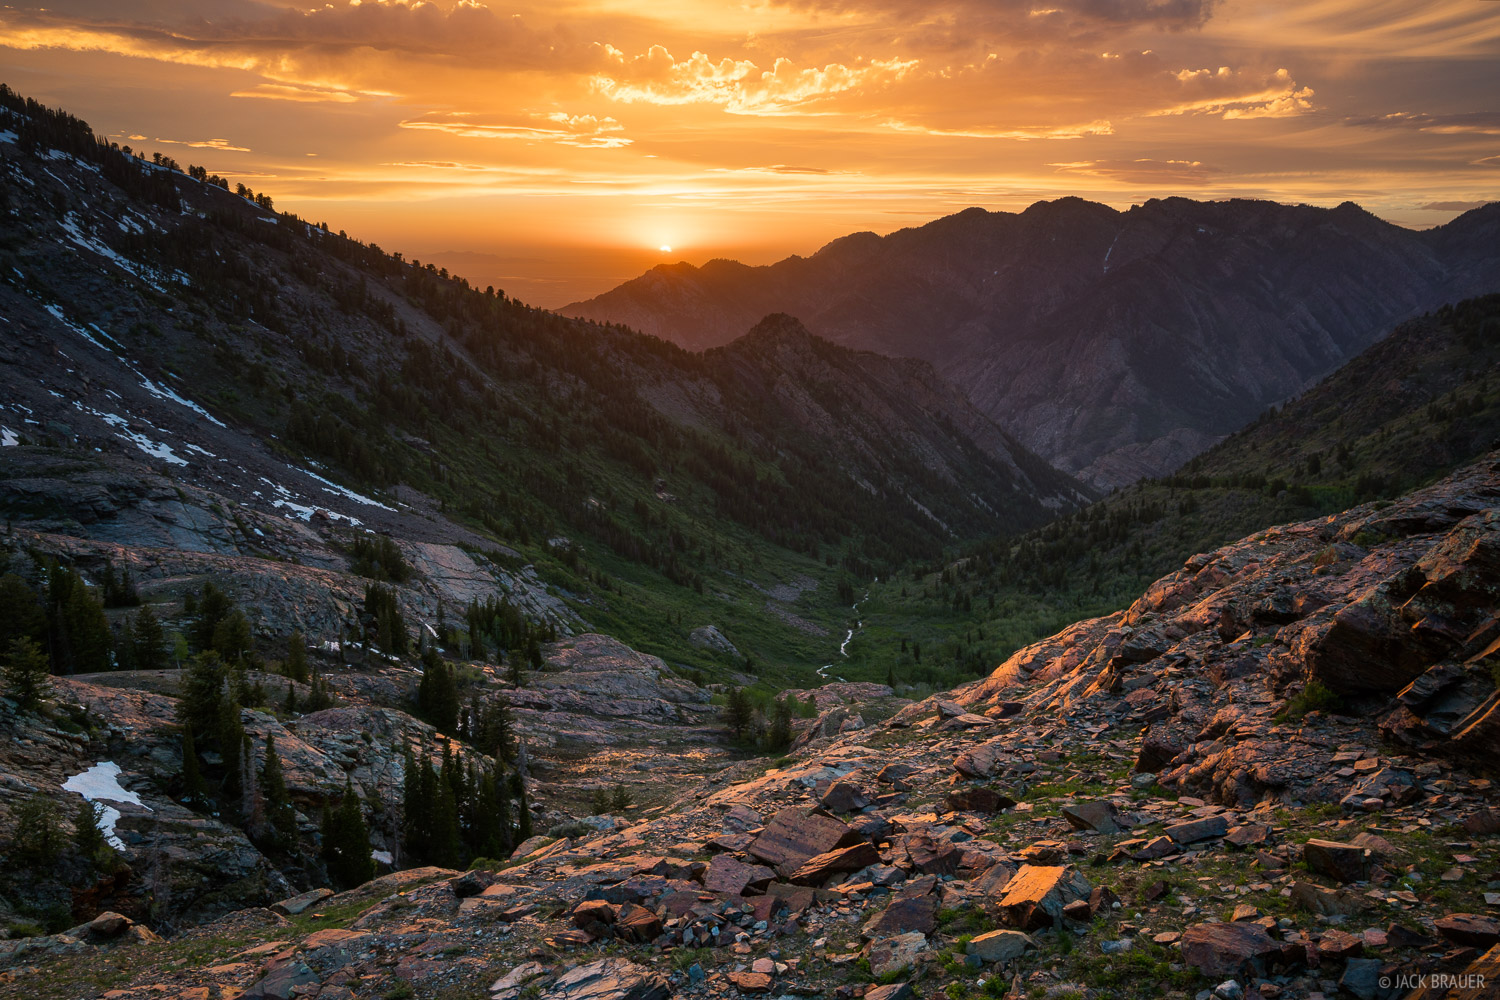 Lake Blanche, Twin Peaks Wilderness, Utah, Wasatch Range, sunset, Big Cottonwood Canyon, photo